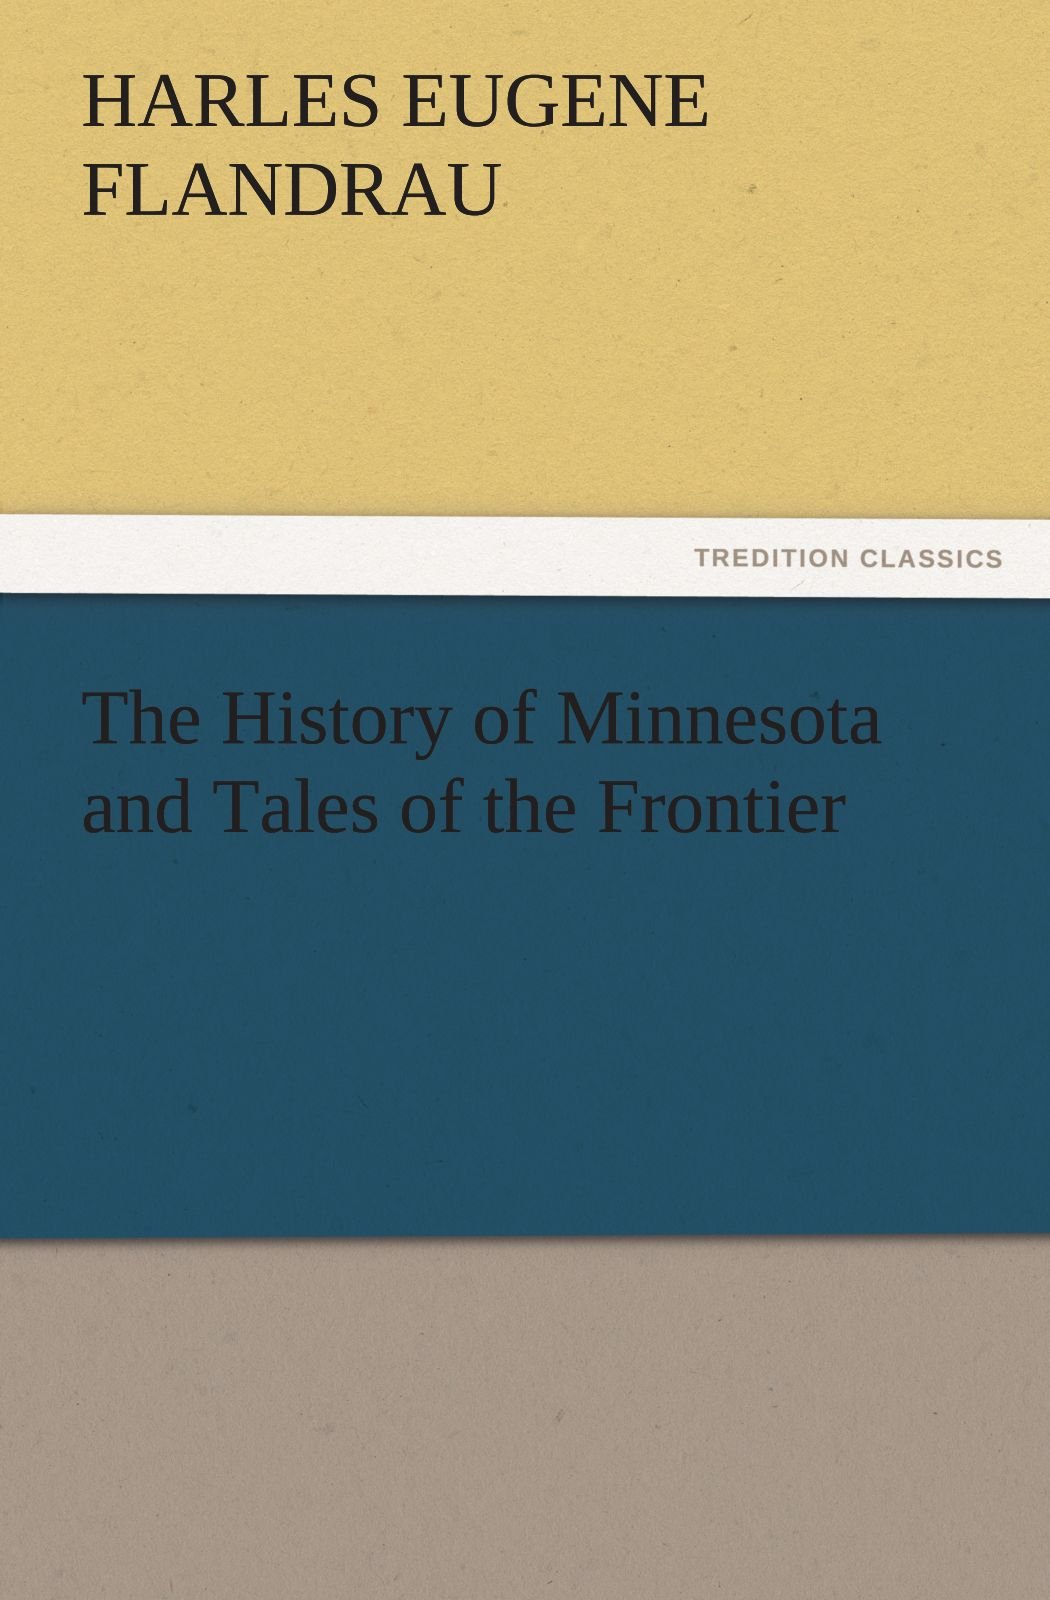 The History of Minnesota and Tales of the Frontier (TREDITION CLASSICS) ebook